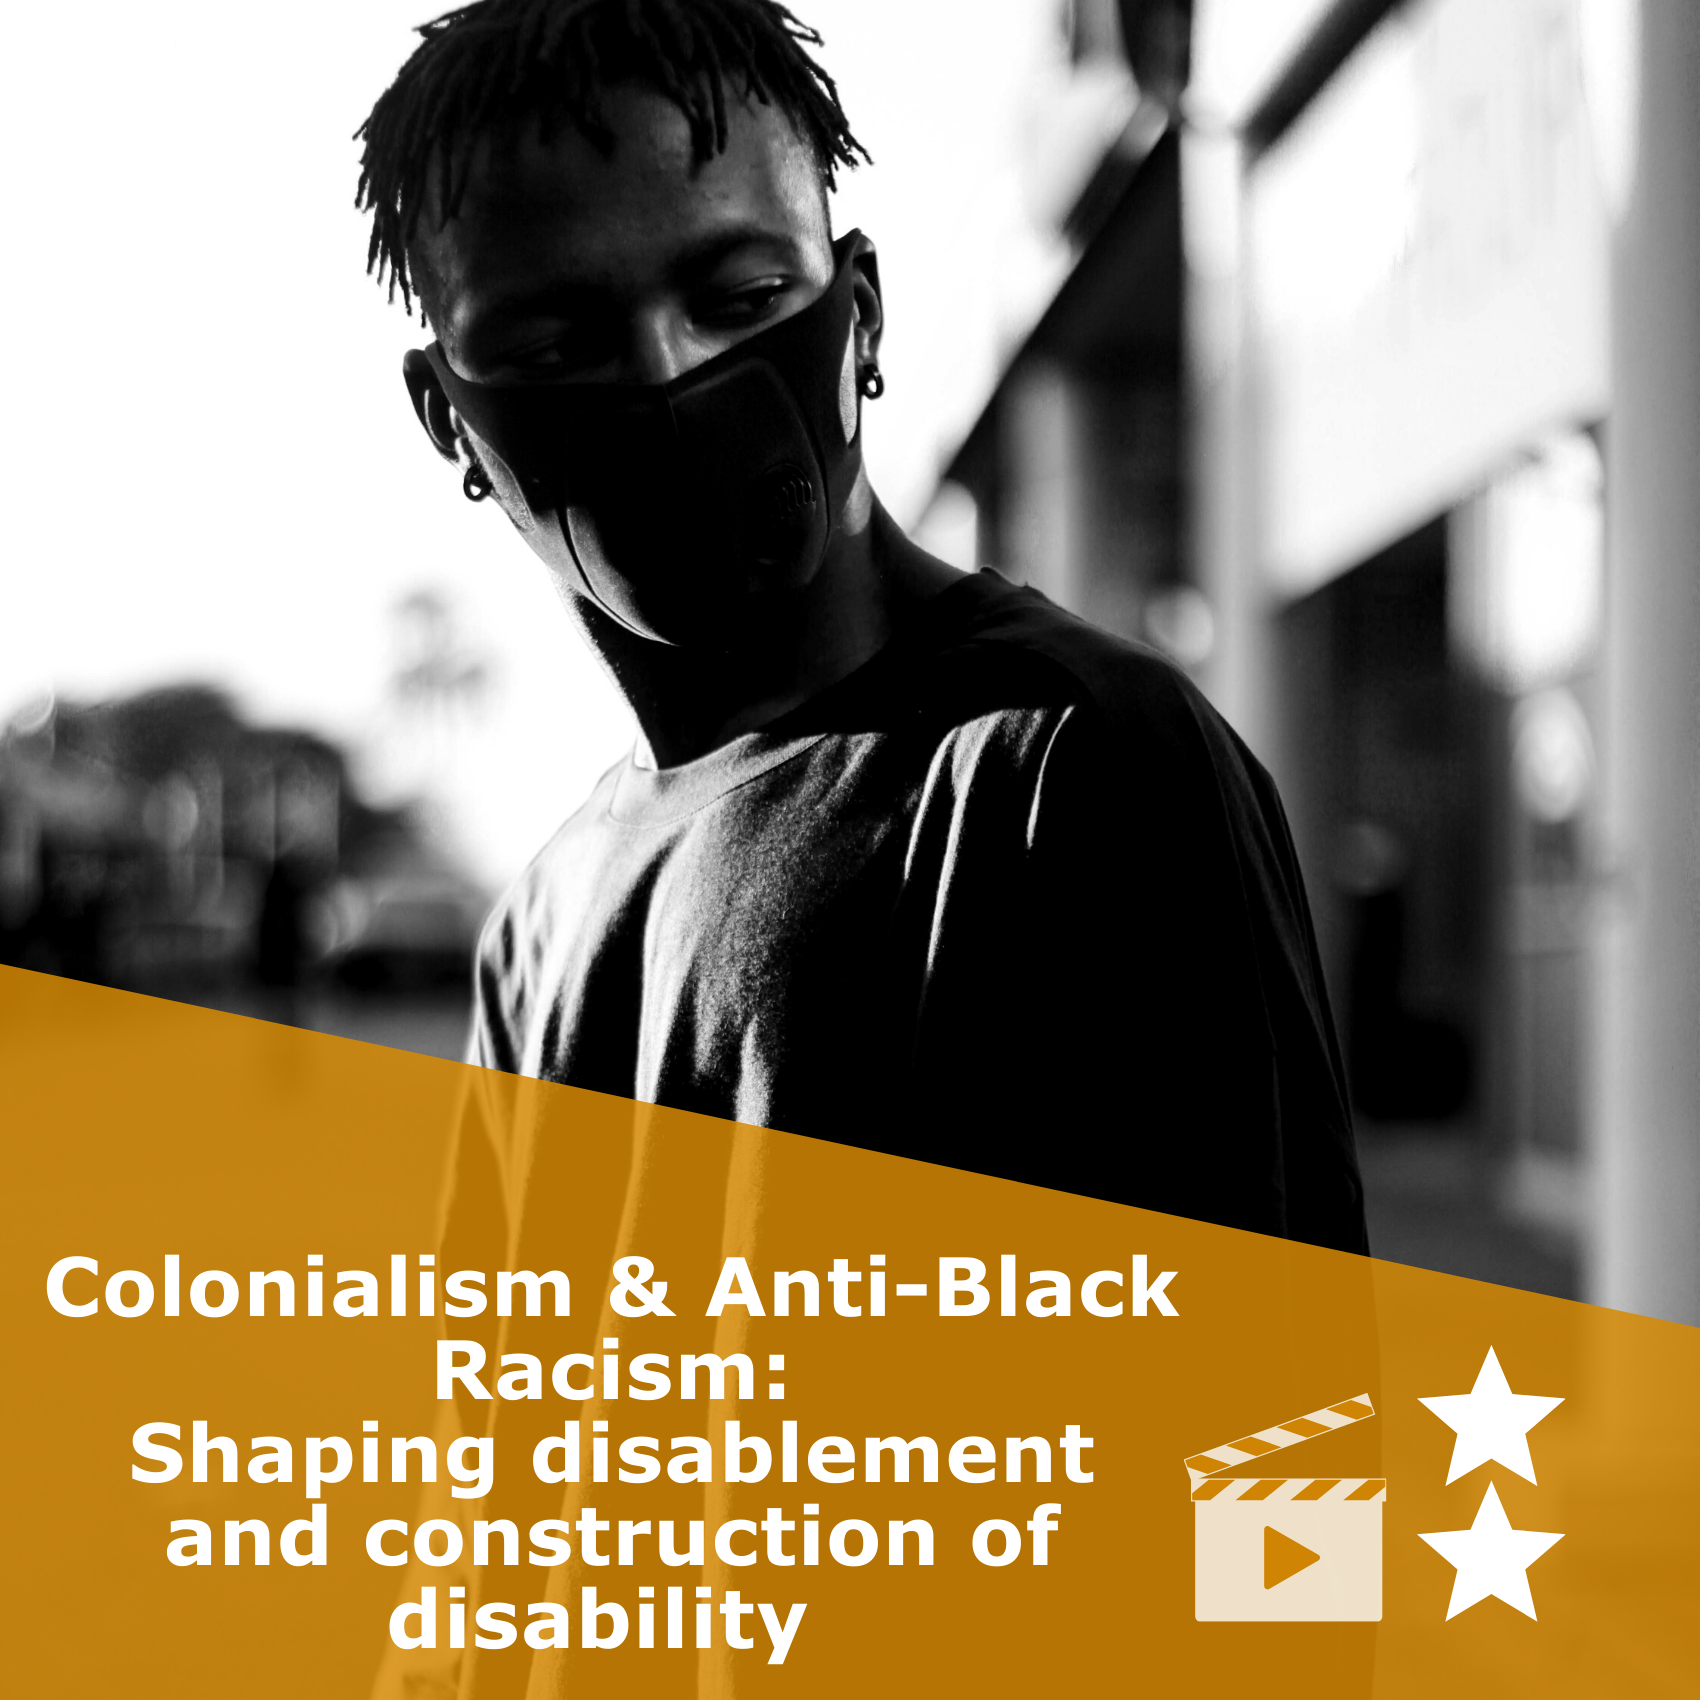 Title 'Colonialism & Anti-Black Racism: Shaping disablement and construction of disability'. It is a video rated 2 stars.